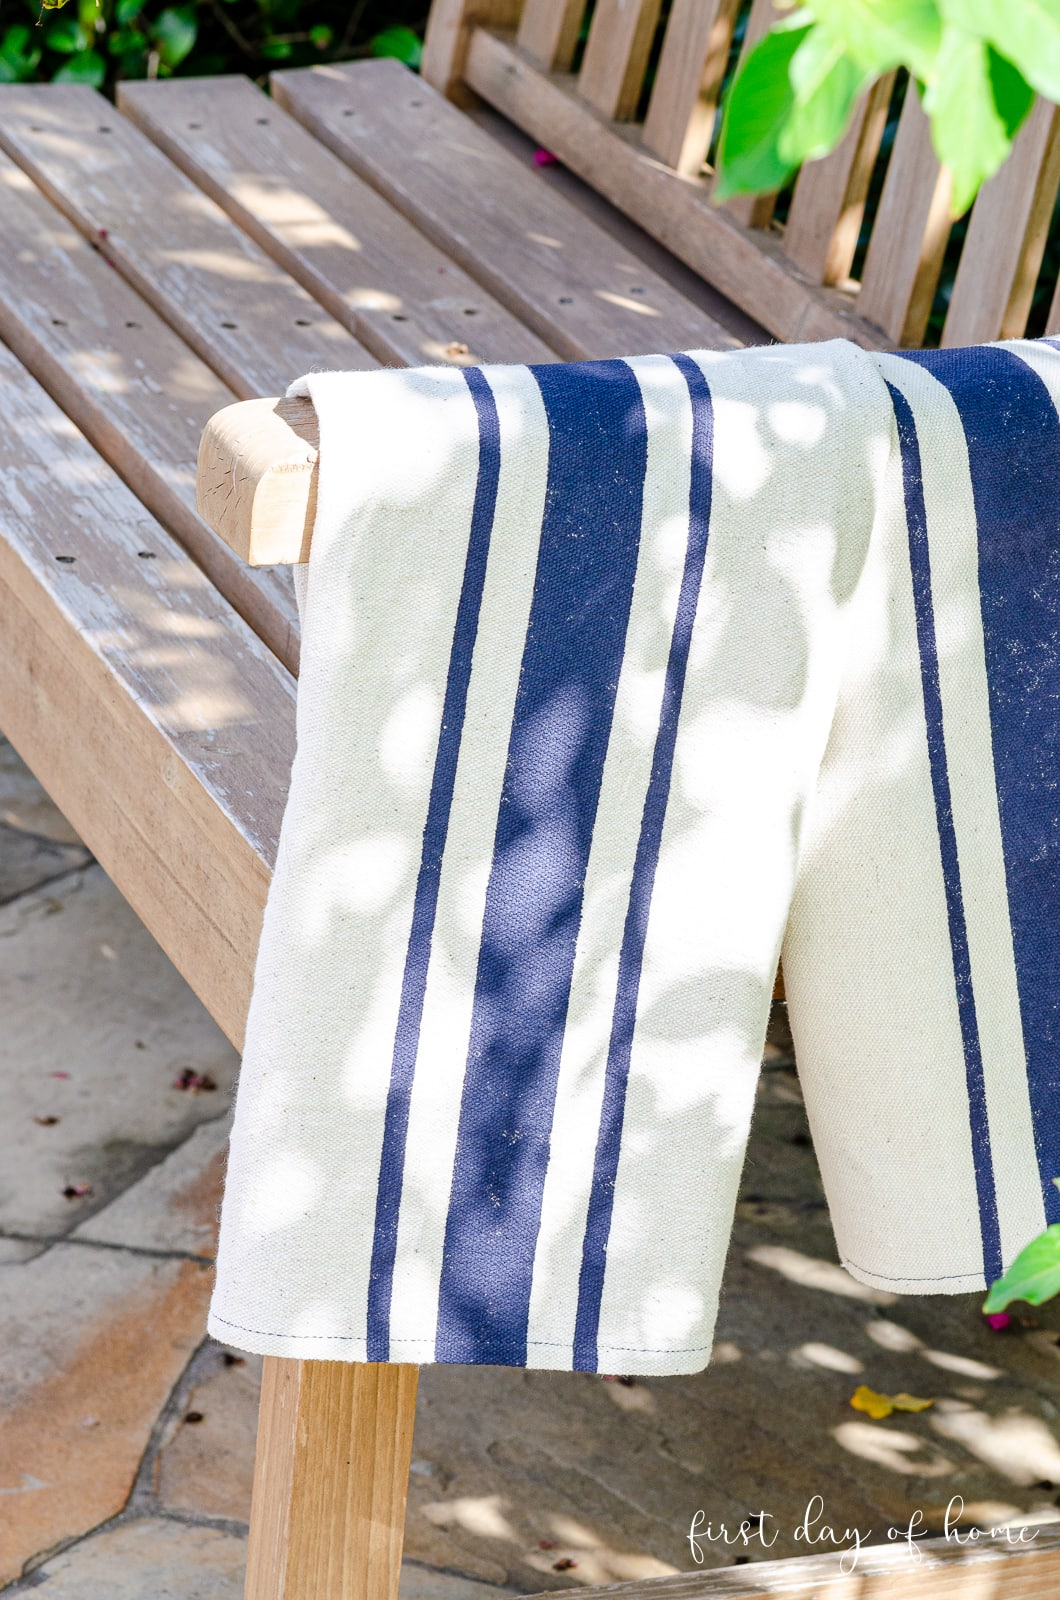 Flour sack dish towels hanging on farmhouse style bench